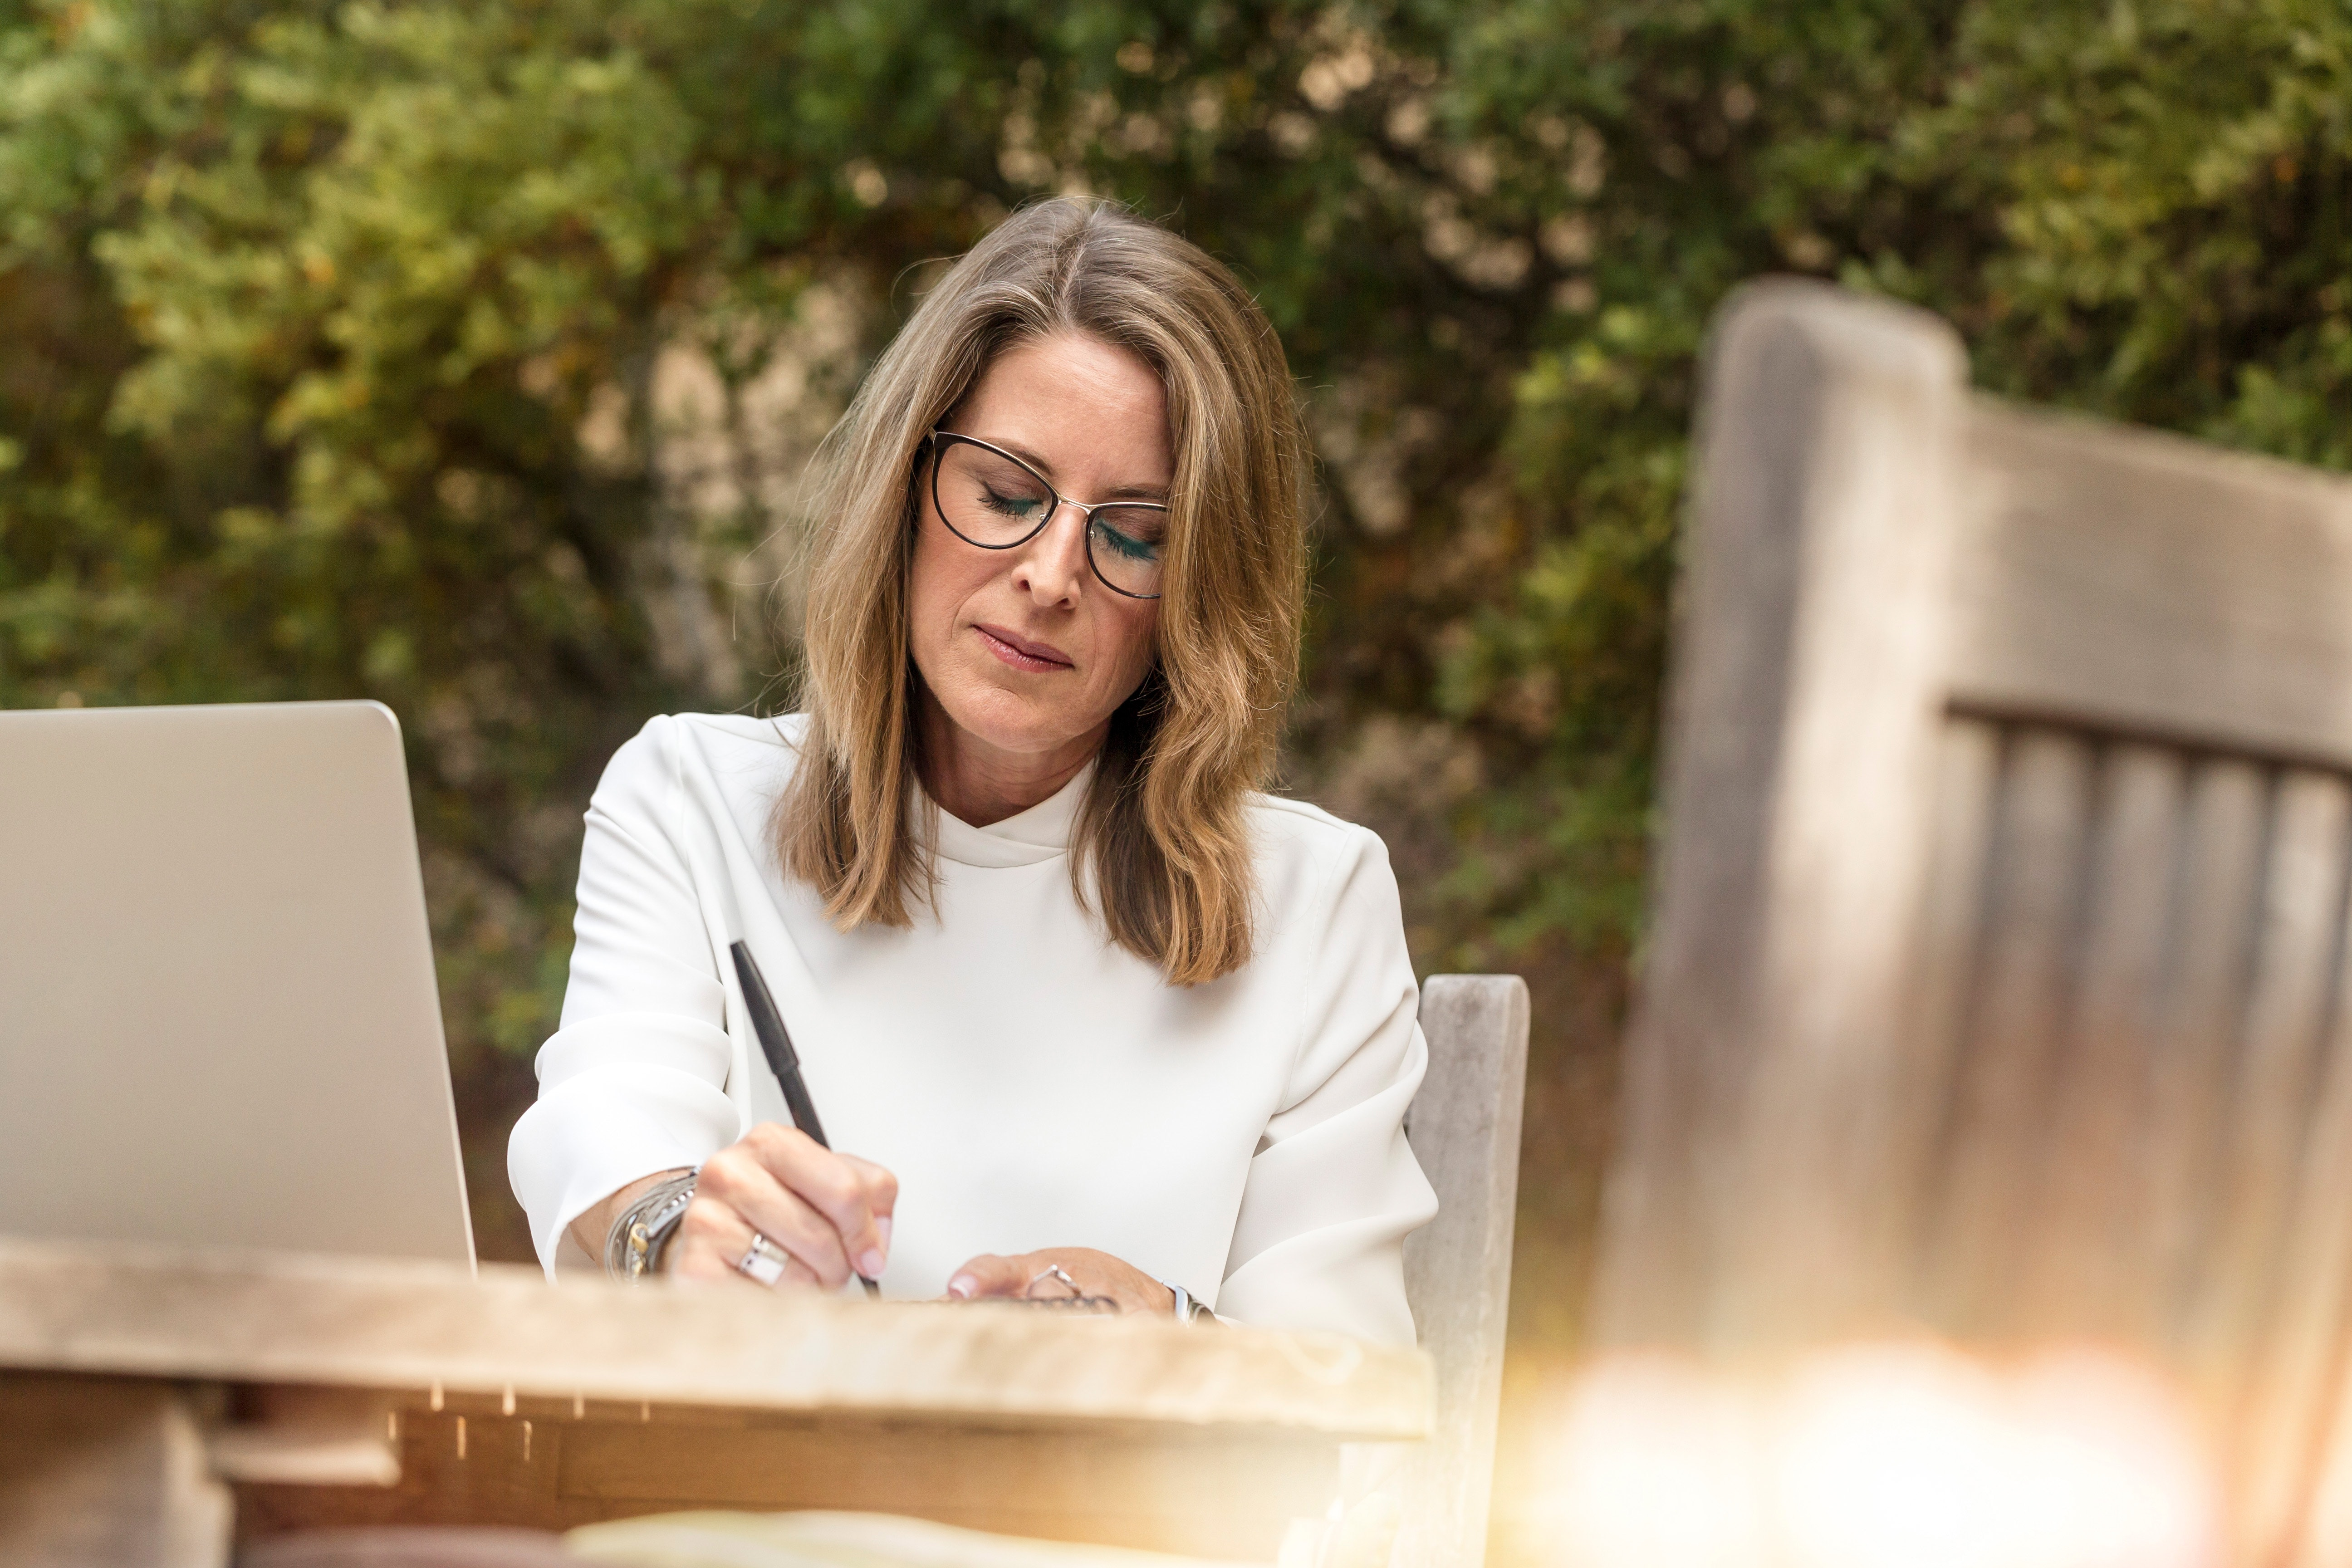 woman writing with semi-serious expression